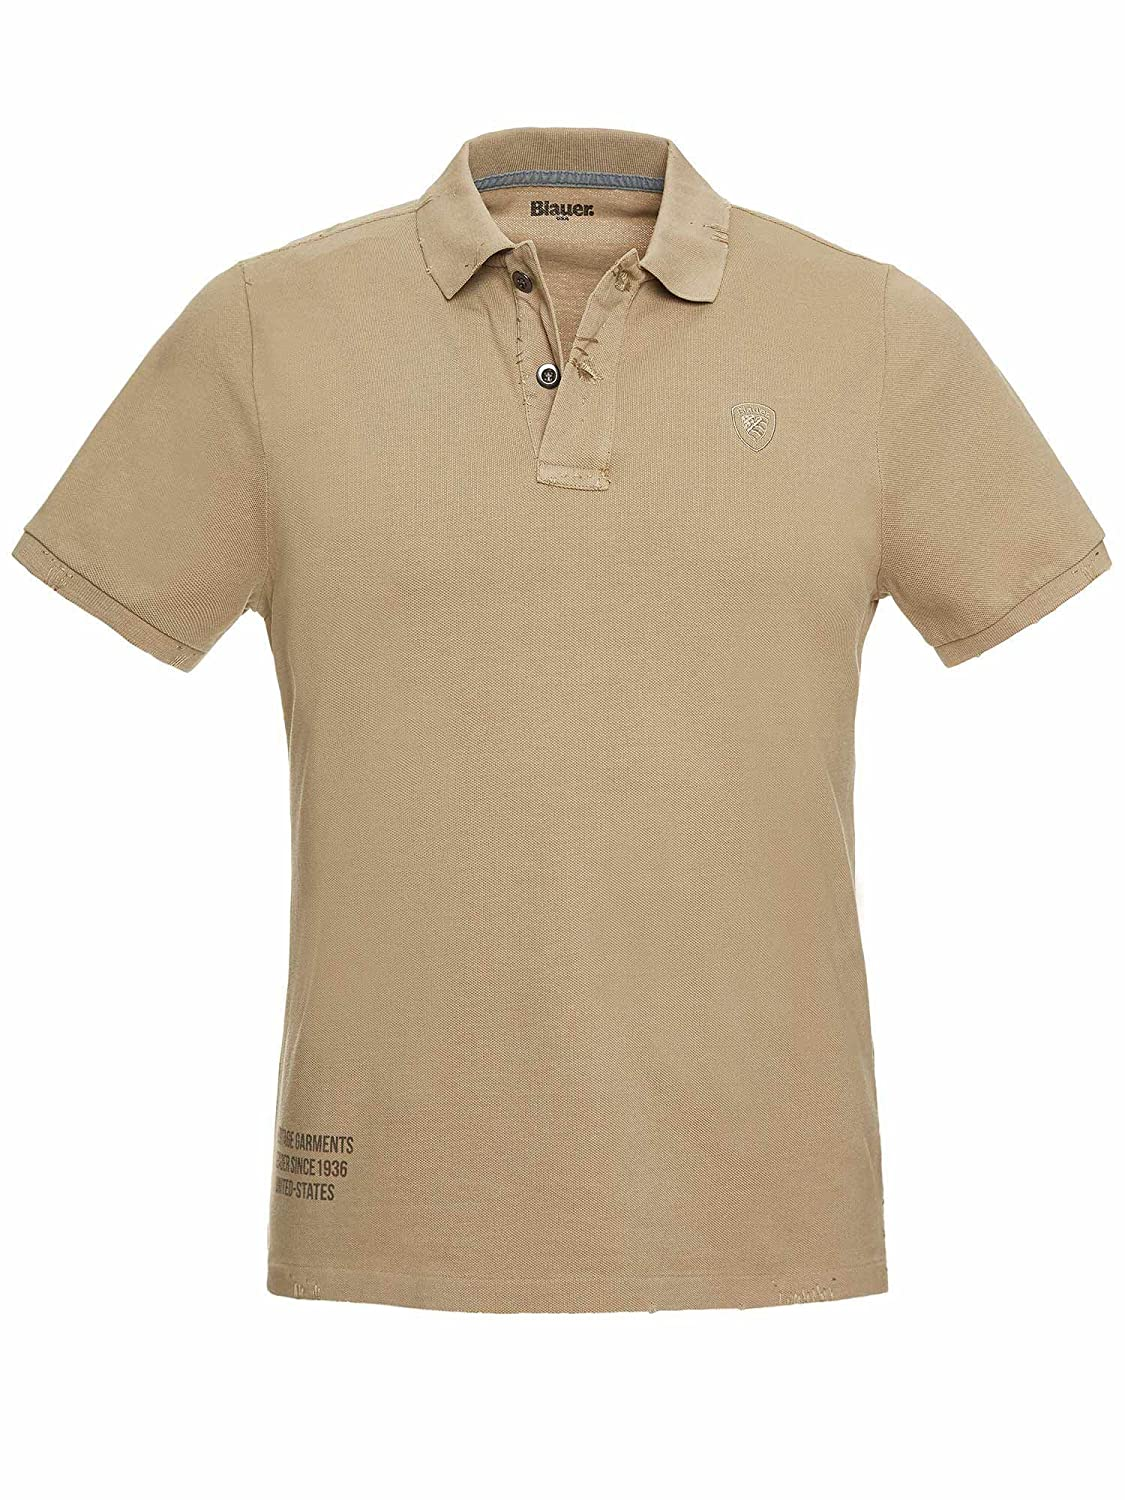 Blauer Polo USA Uomo BLUT02002 Nocciola 3XL: Amazon.es: Ropa y ...